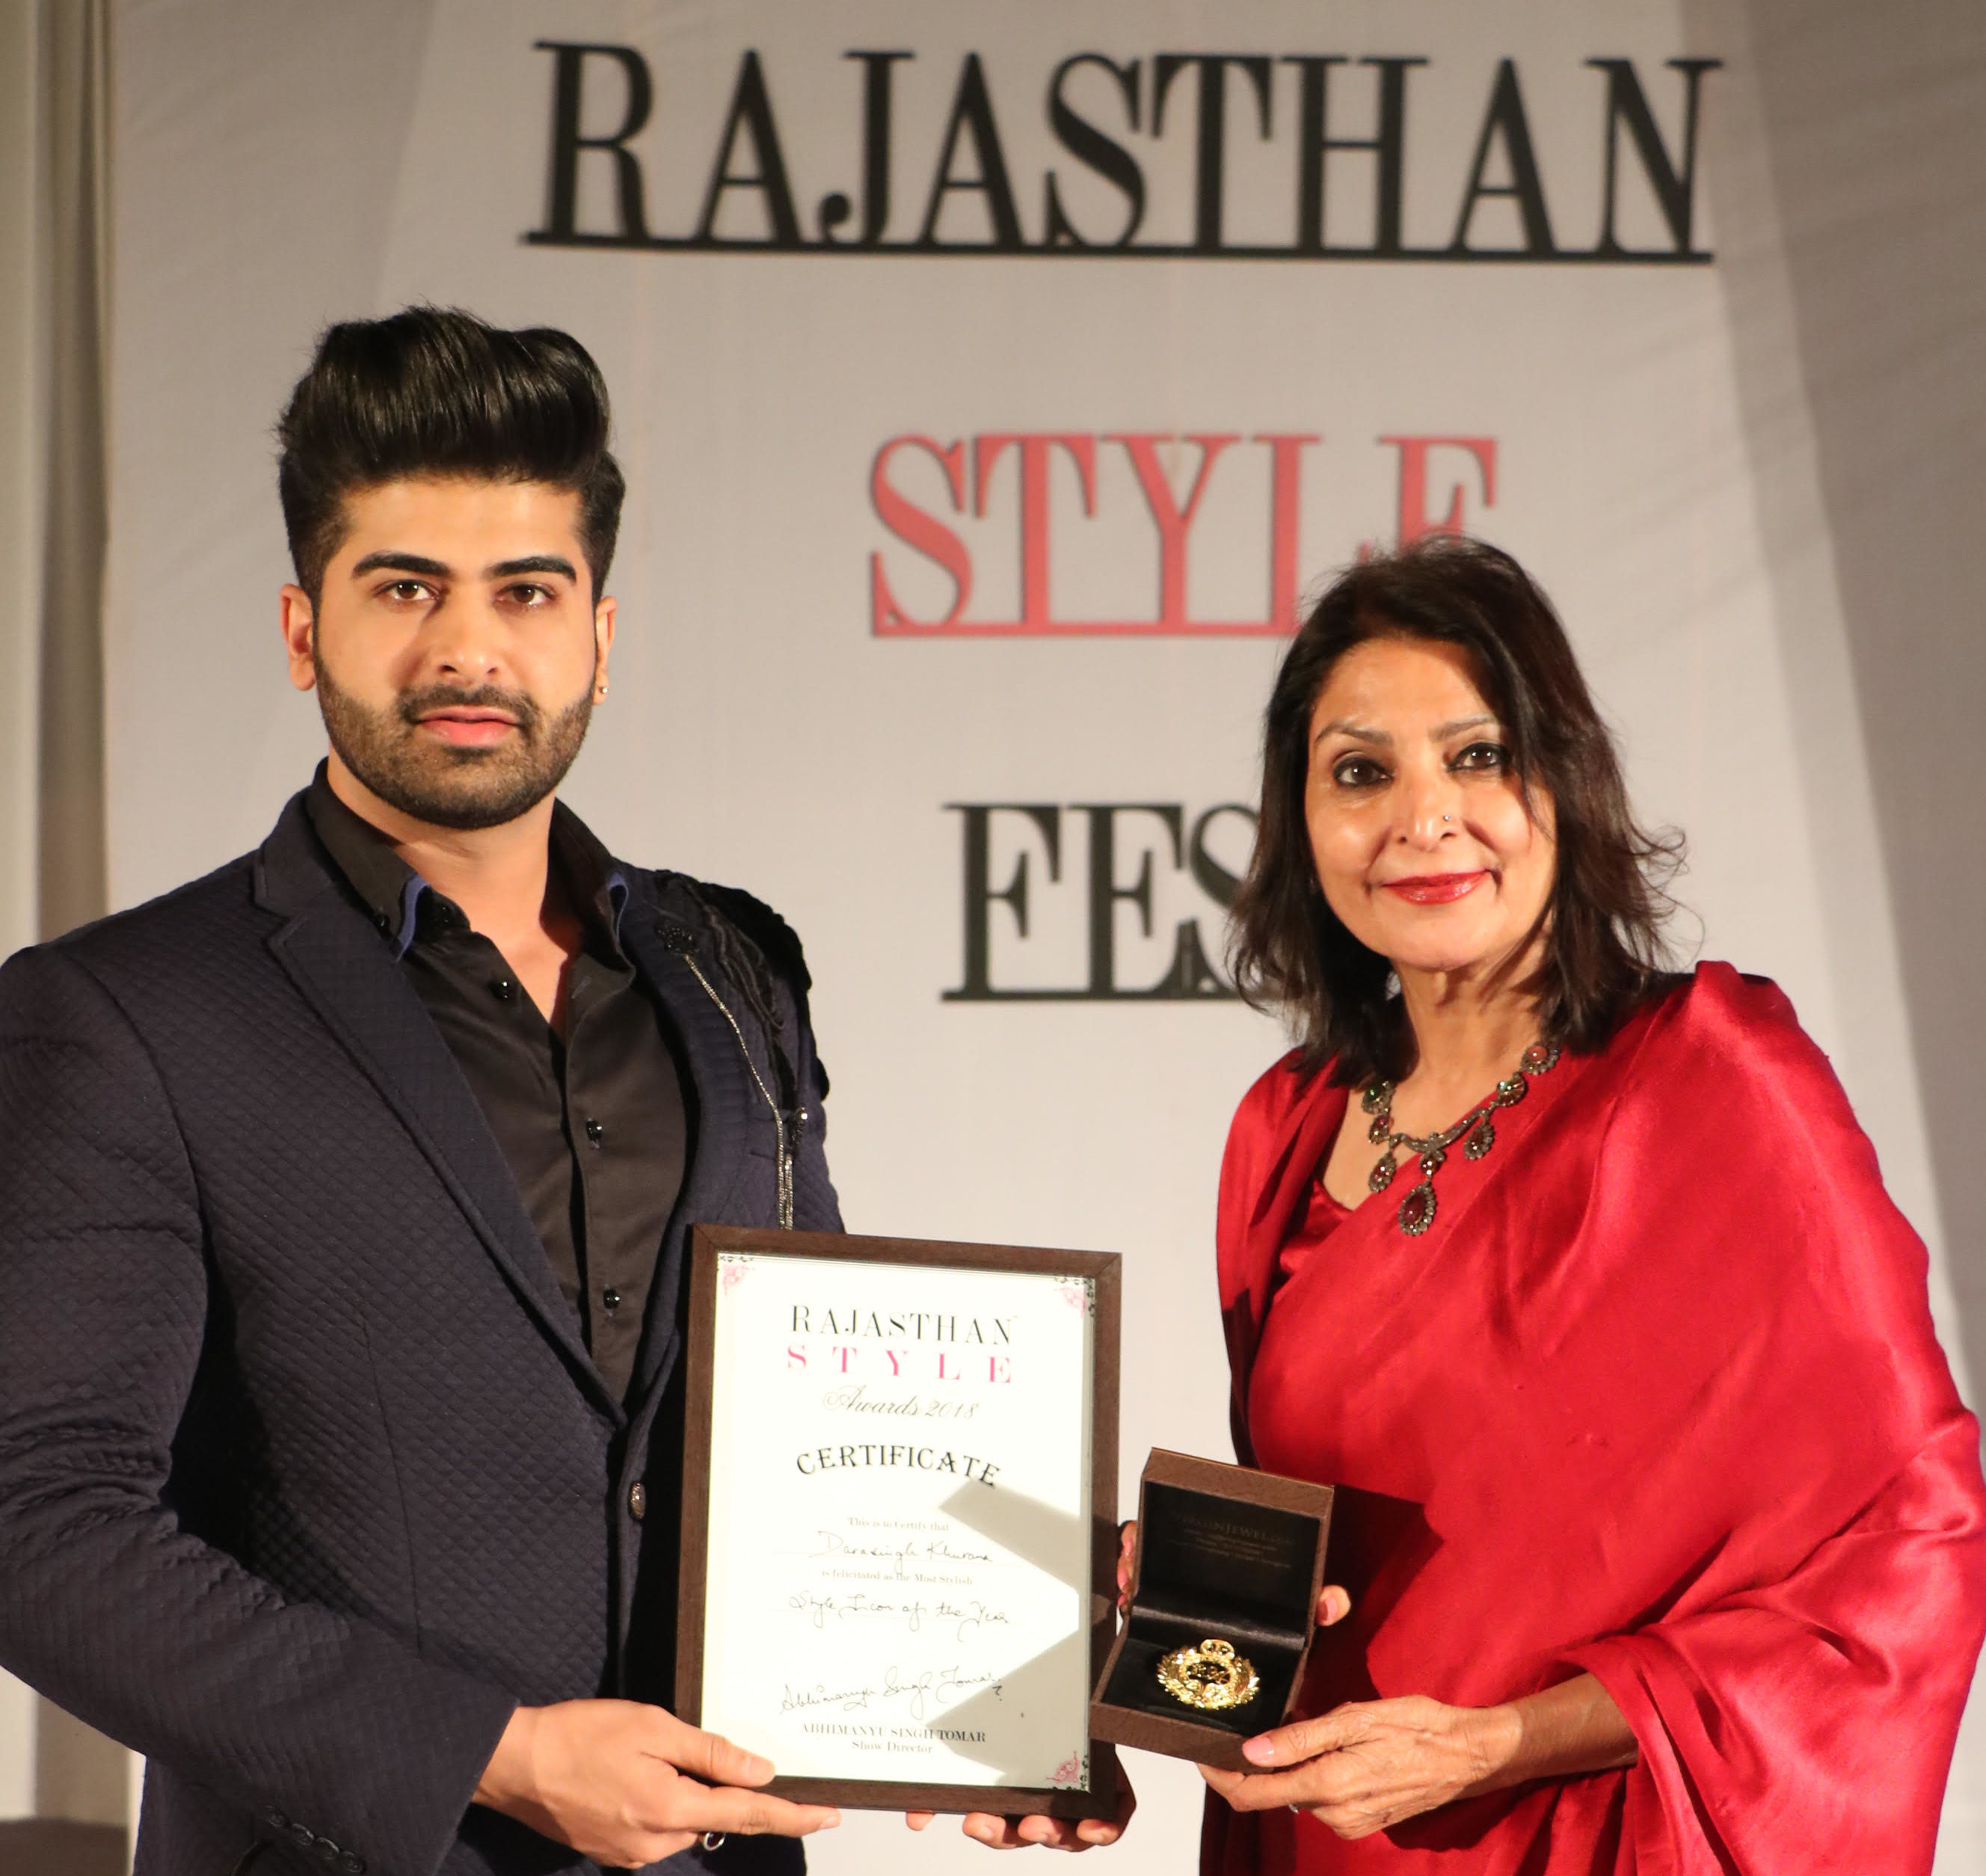 Rajasthan Style Awards, Darasing Khurana, Style Icon of the Year Award,